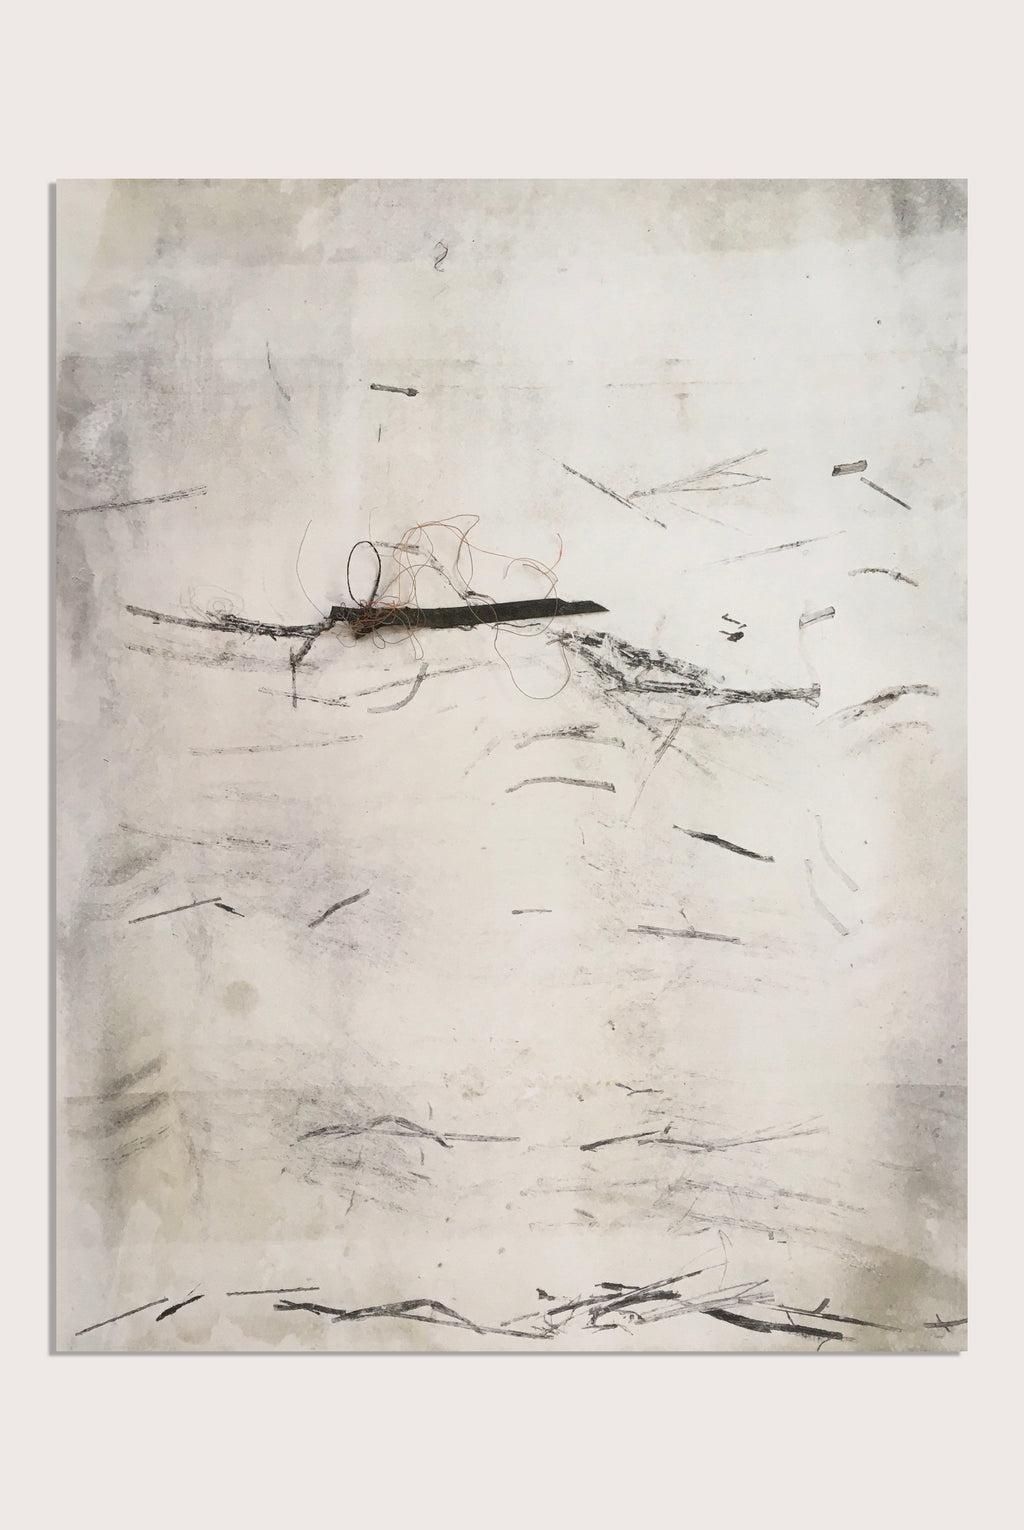 An abstract drawing by contemporary, woman artist Frances Gynn